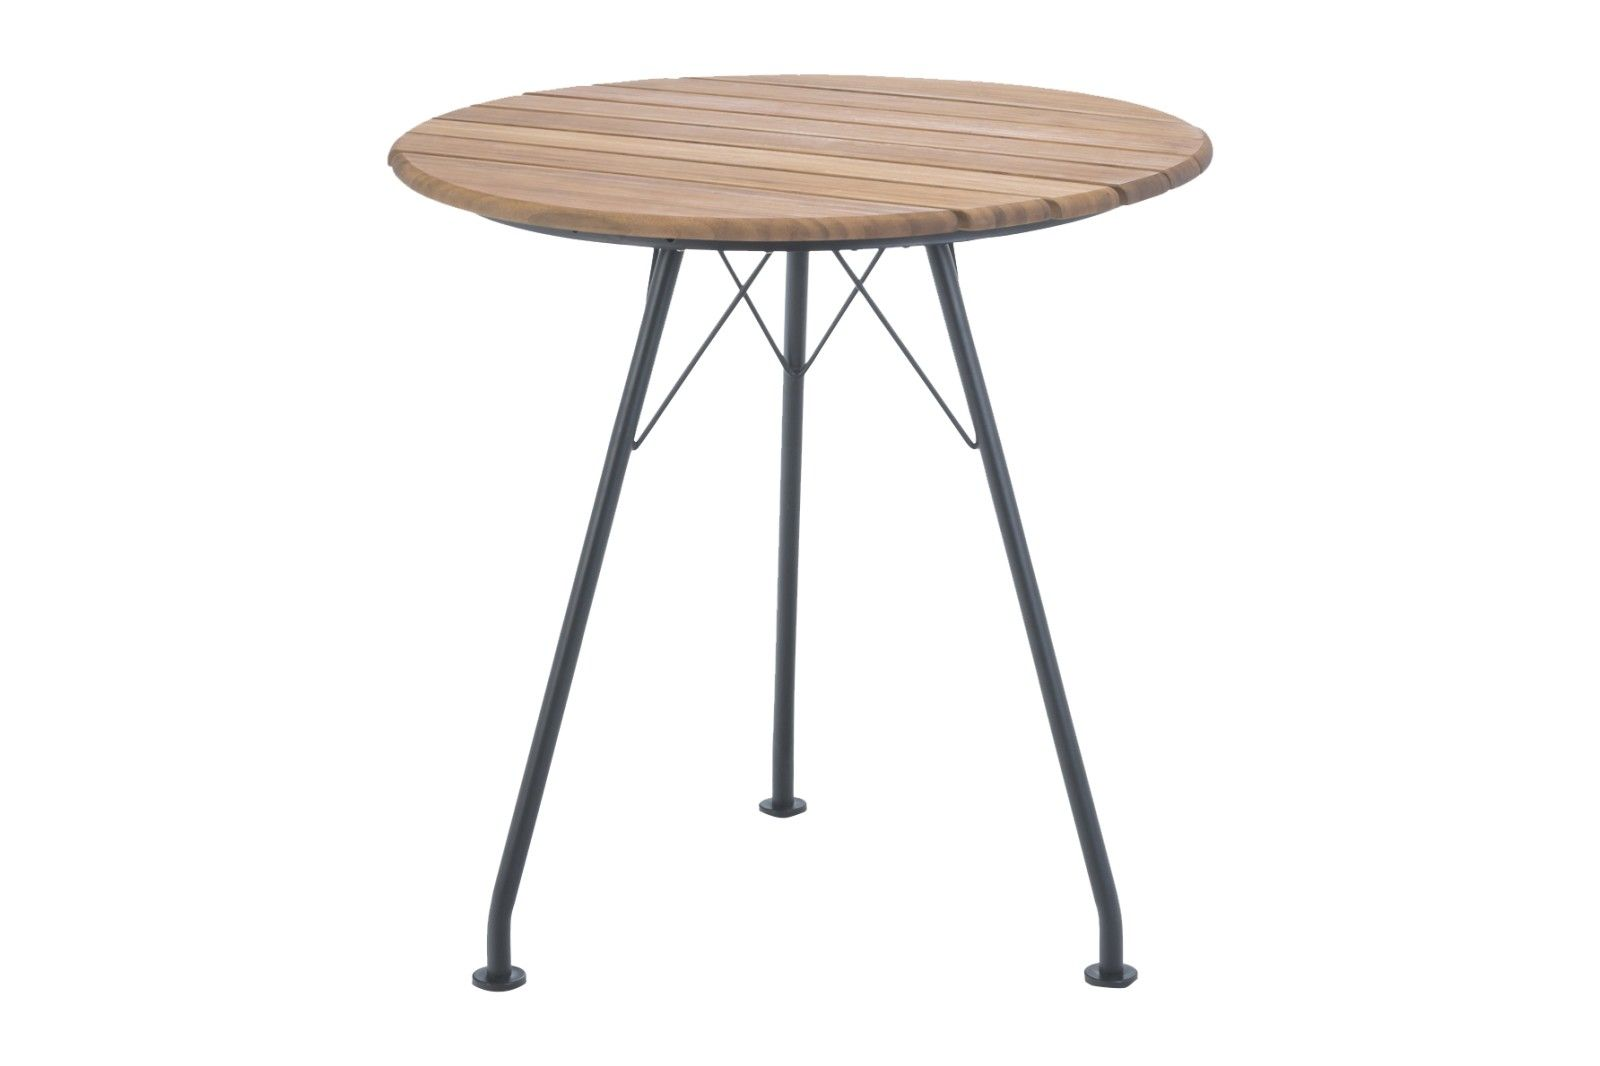 Circum Cafe Round Table From Houe Cafe Furniture Innovation